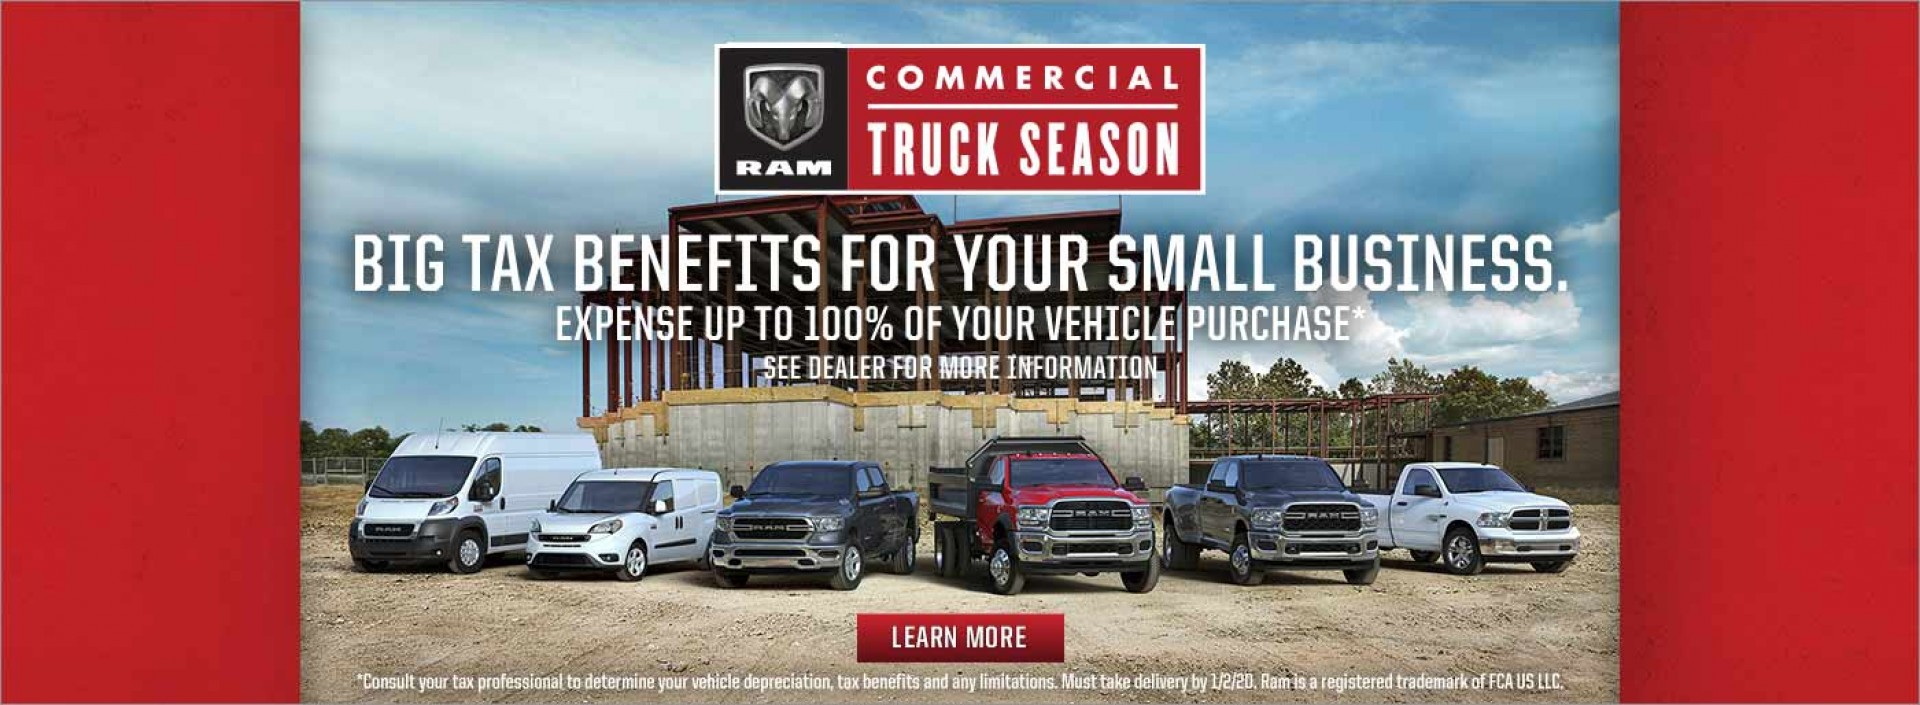 Commercial Truck Season - Big Tax Benefits for your Small Business